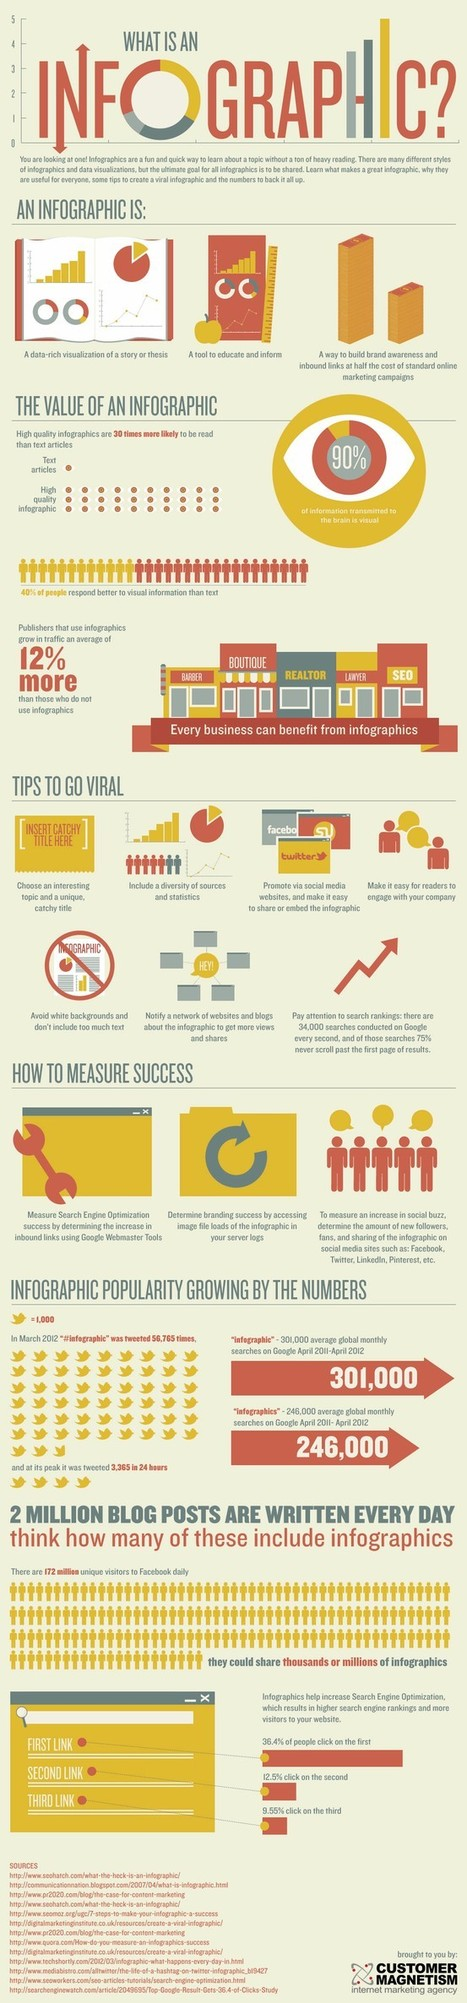 Visual Marketing Tips Tools Best Practices | Visualization Techniques and Practice | Scoop.it